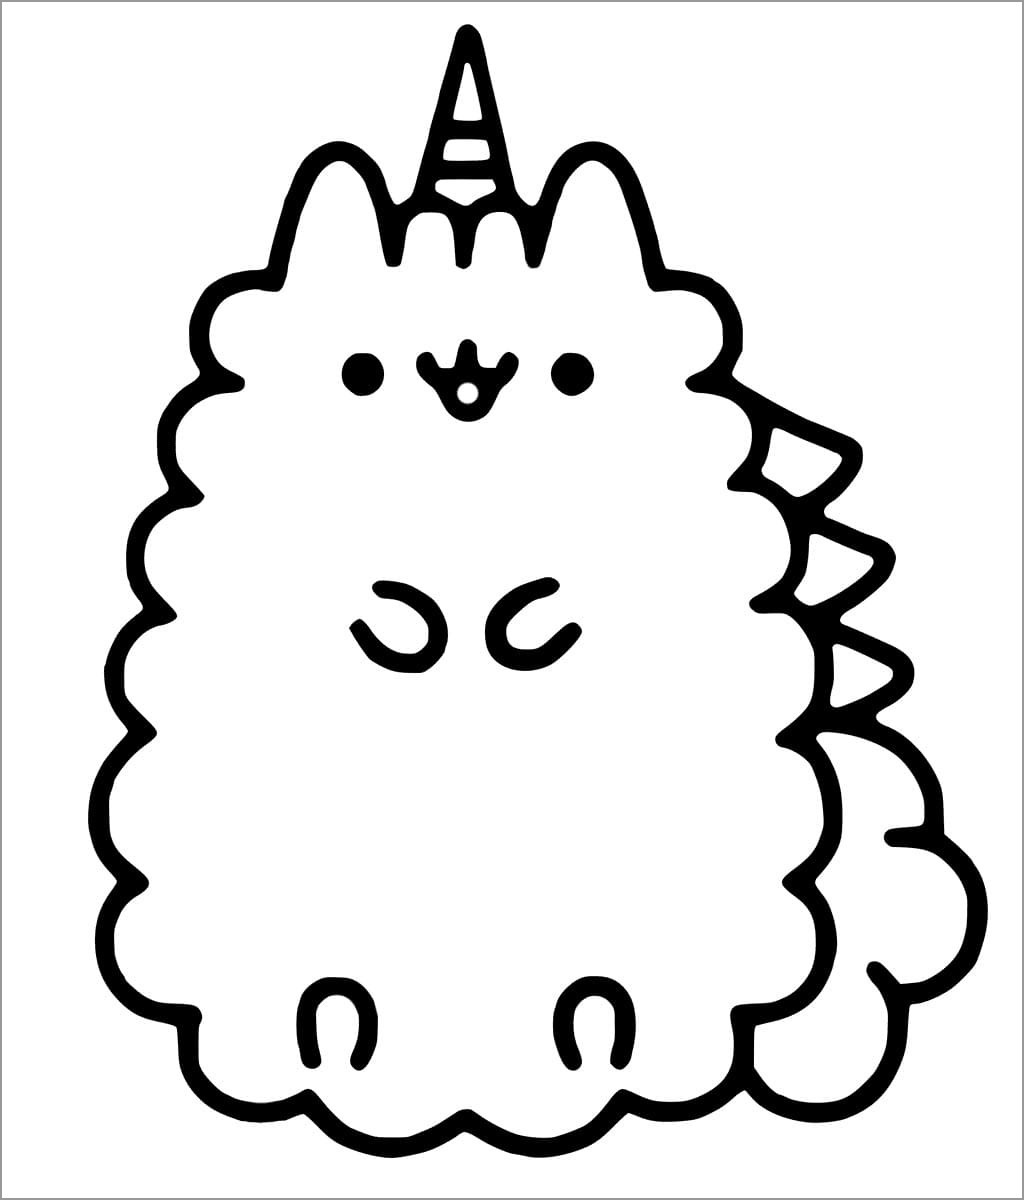 donut pusheen cat coloring pages pusheen kleurplaat pusheen pages coloring donut cat